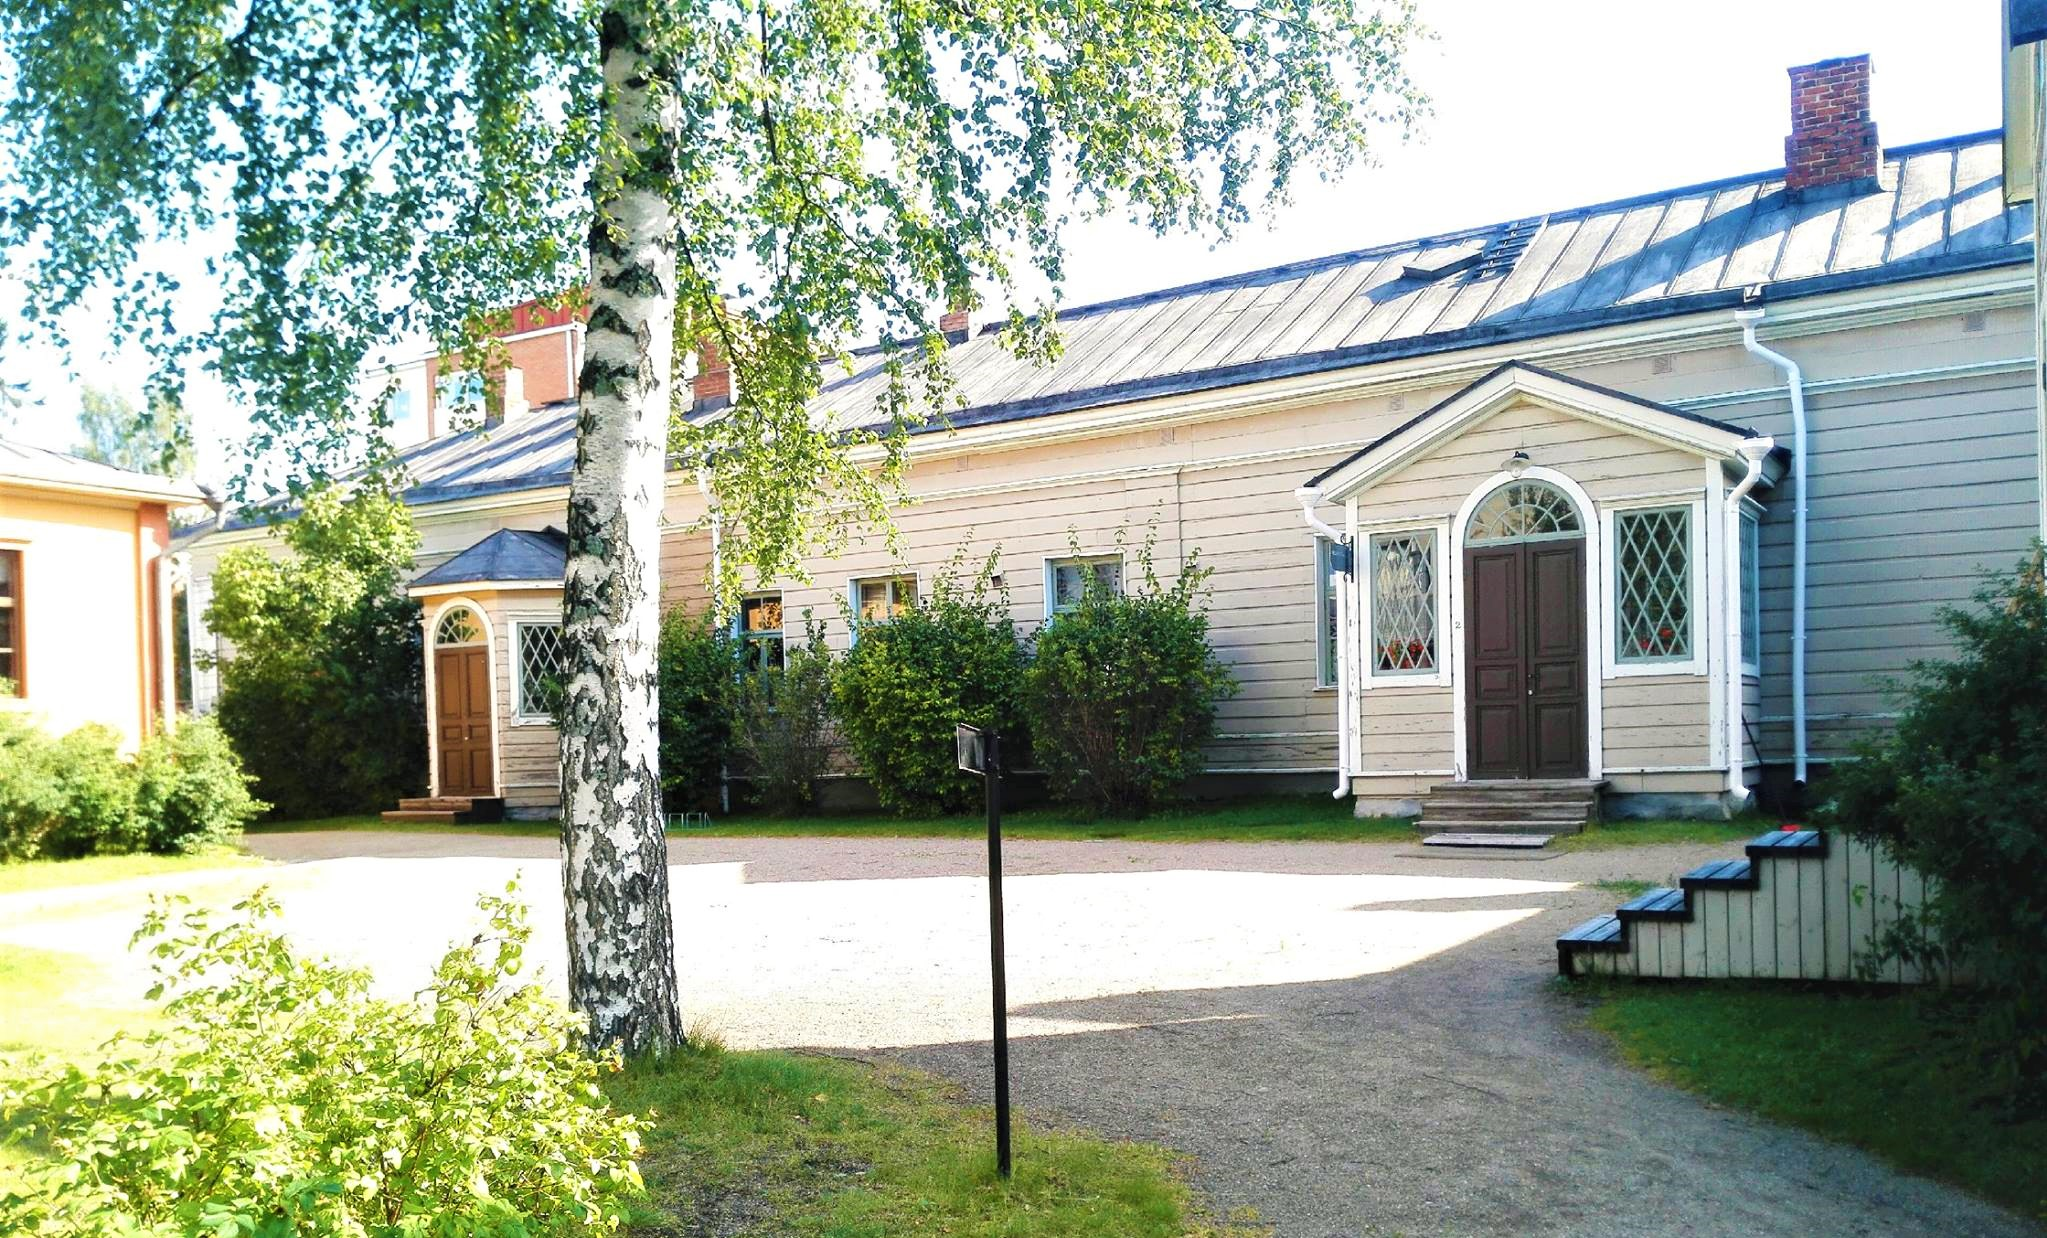 Kuopio Old Town Museum